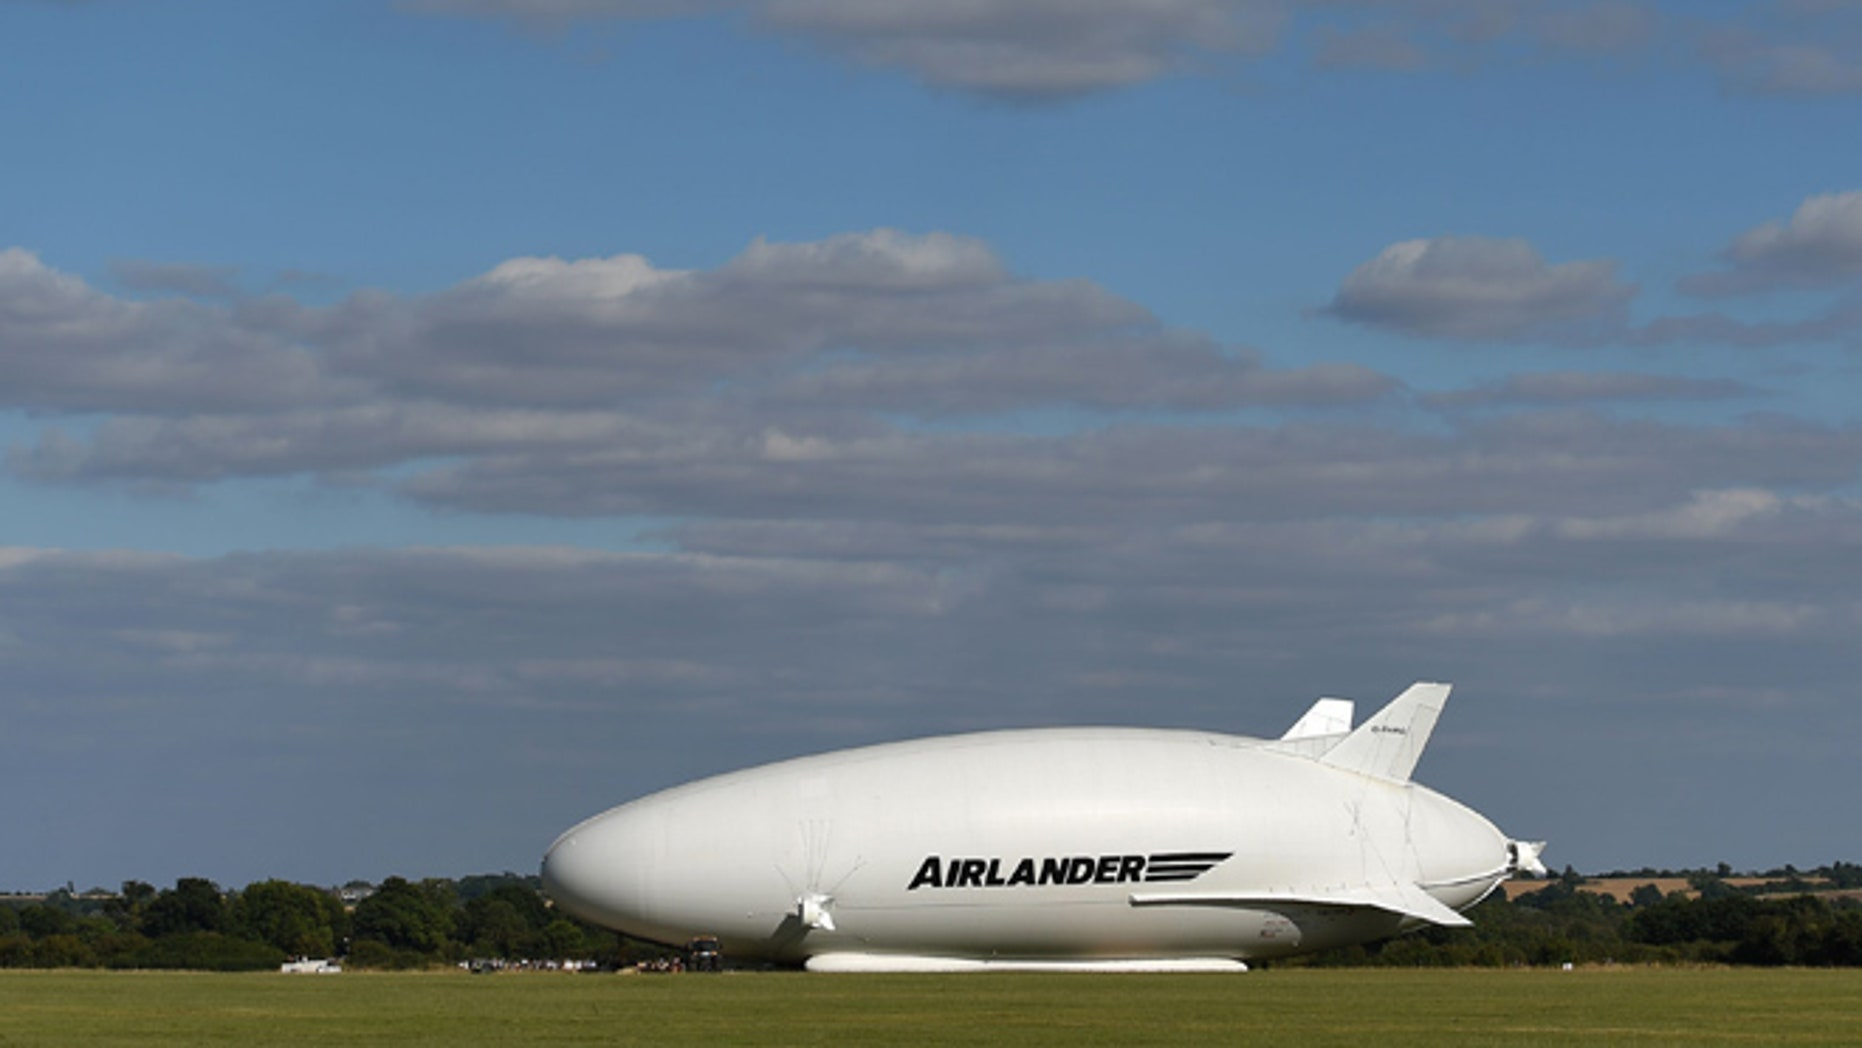 he Airlander 10, part plane, part airship, goes through pre-flight checks at Cardington airfield in Bedfordshire, England, Sunday Aug. 14, 2016.